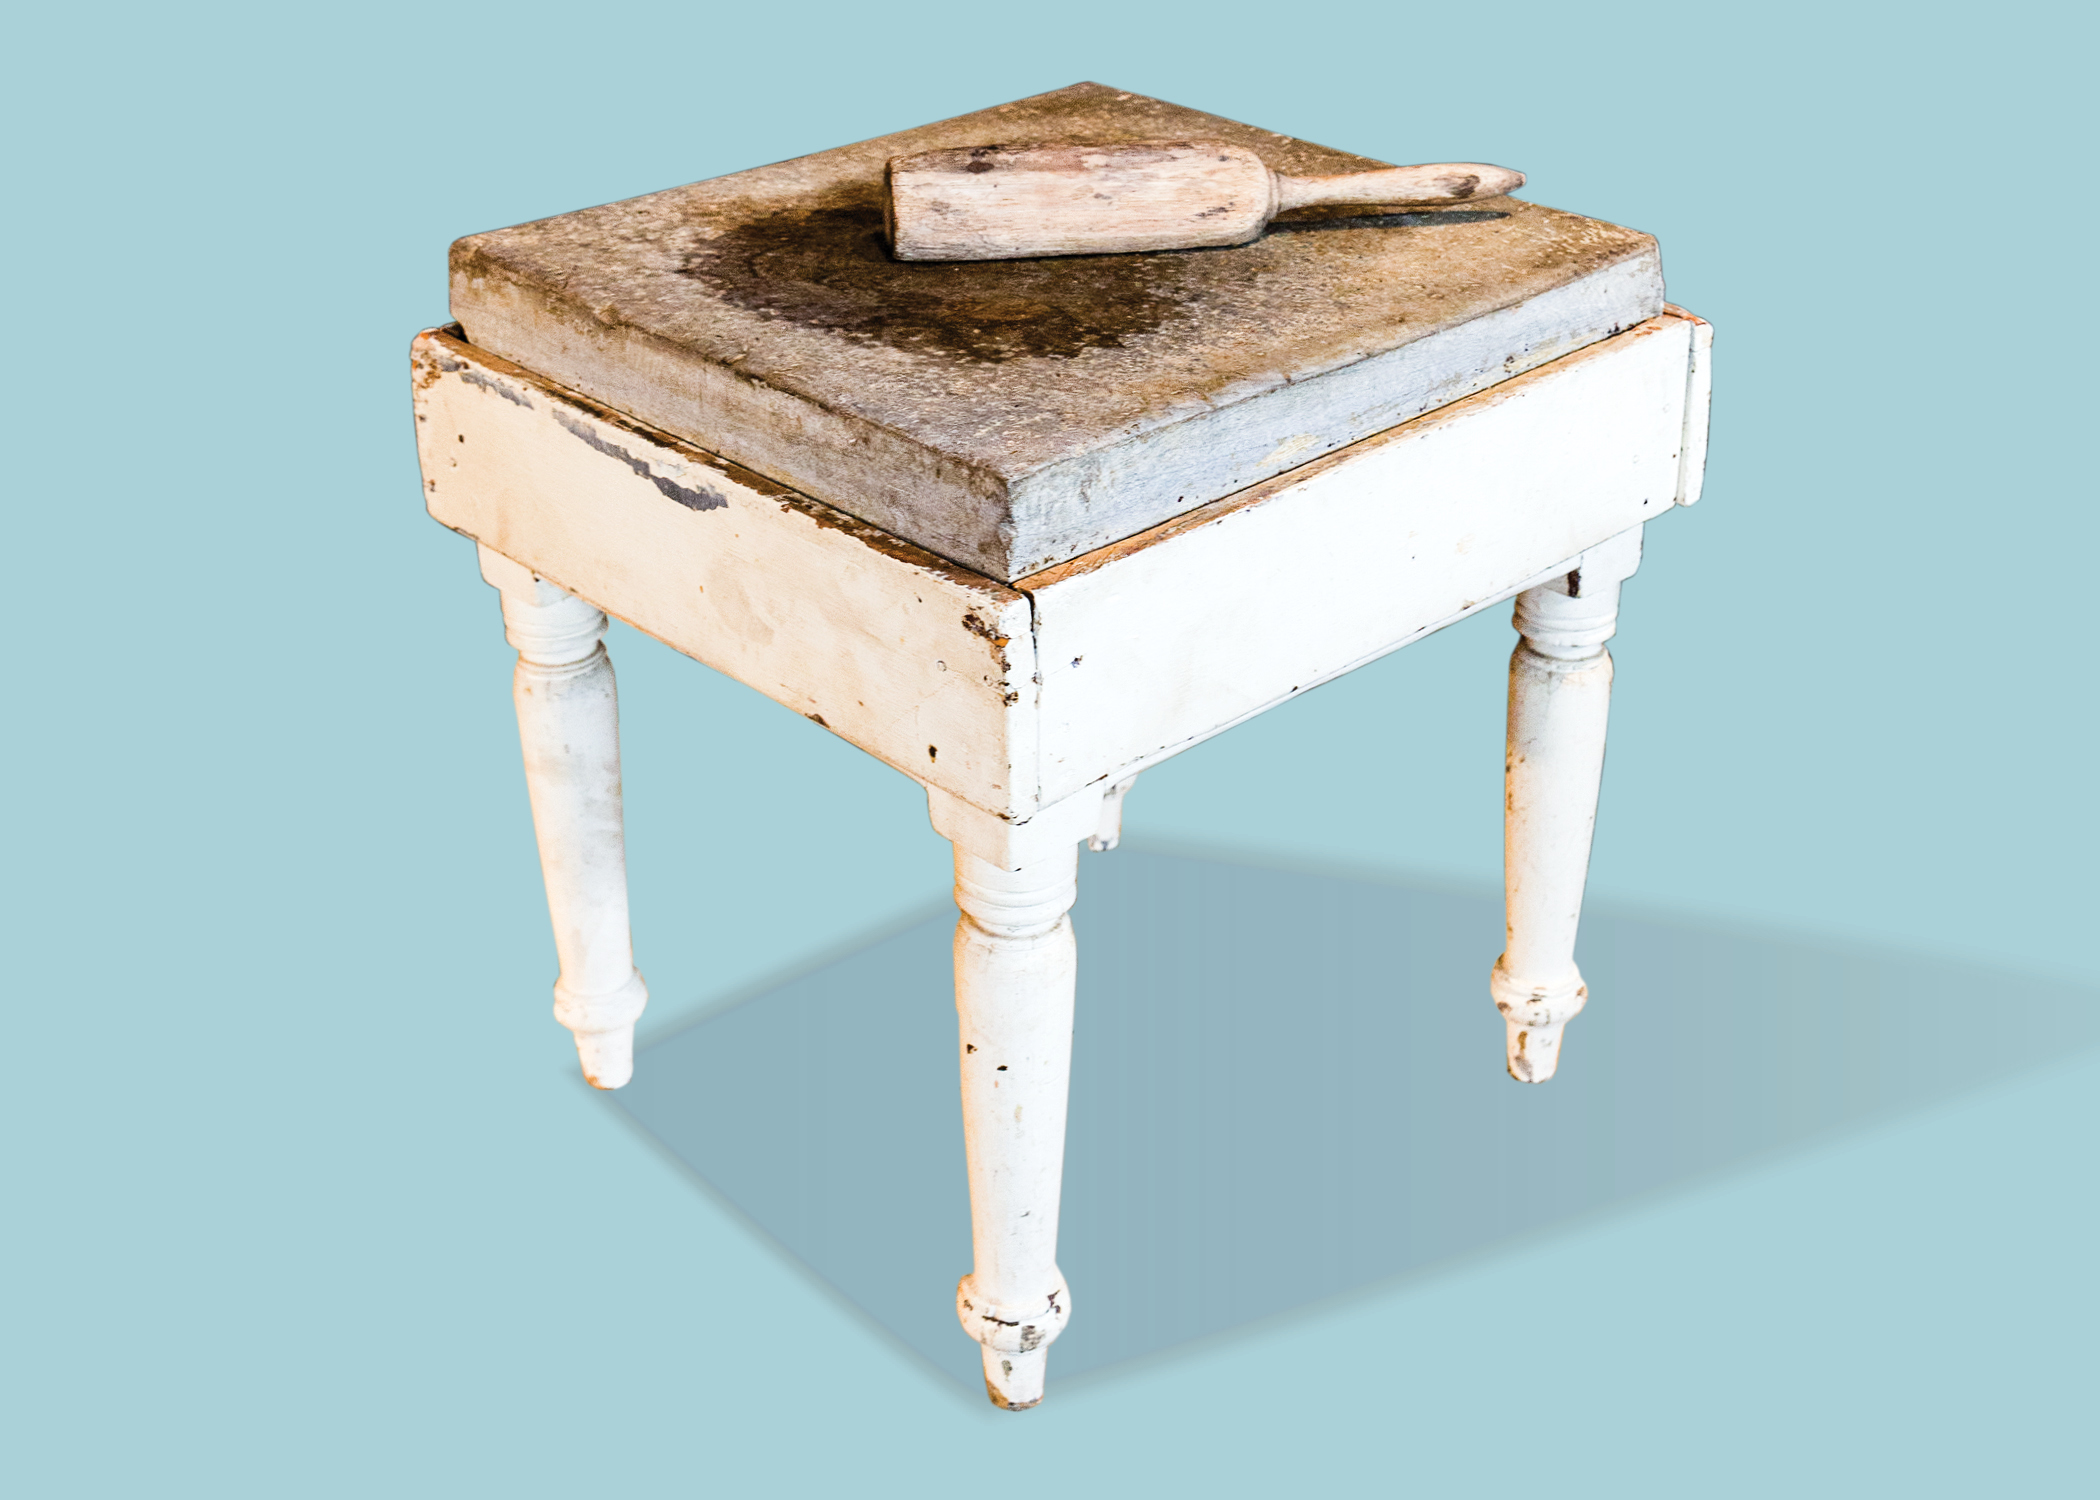 Beaten biscuit table (1850-1860) and beater (early 20th century)